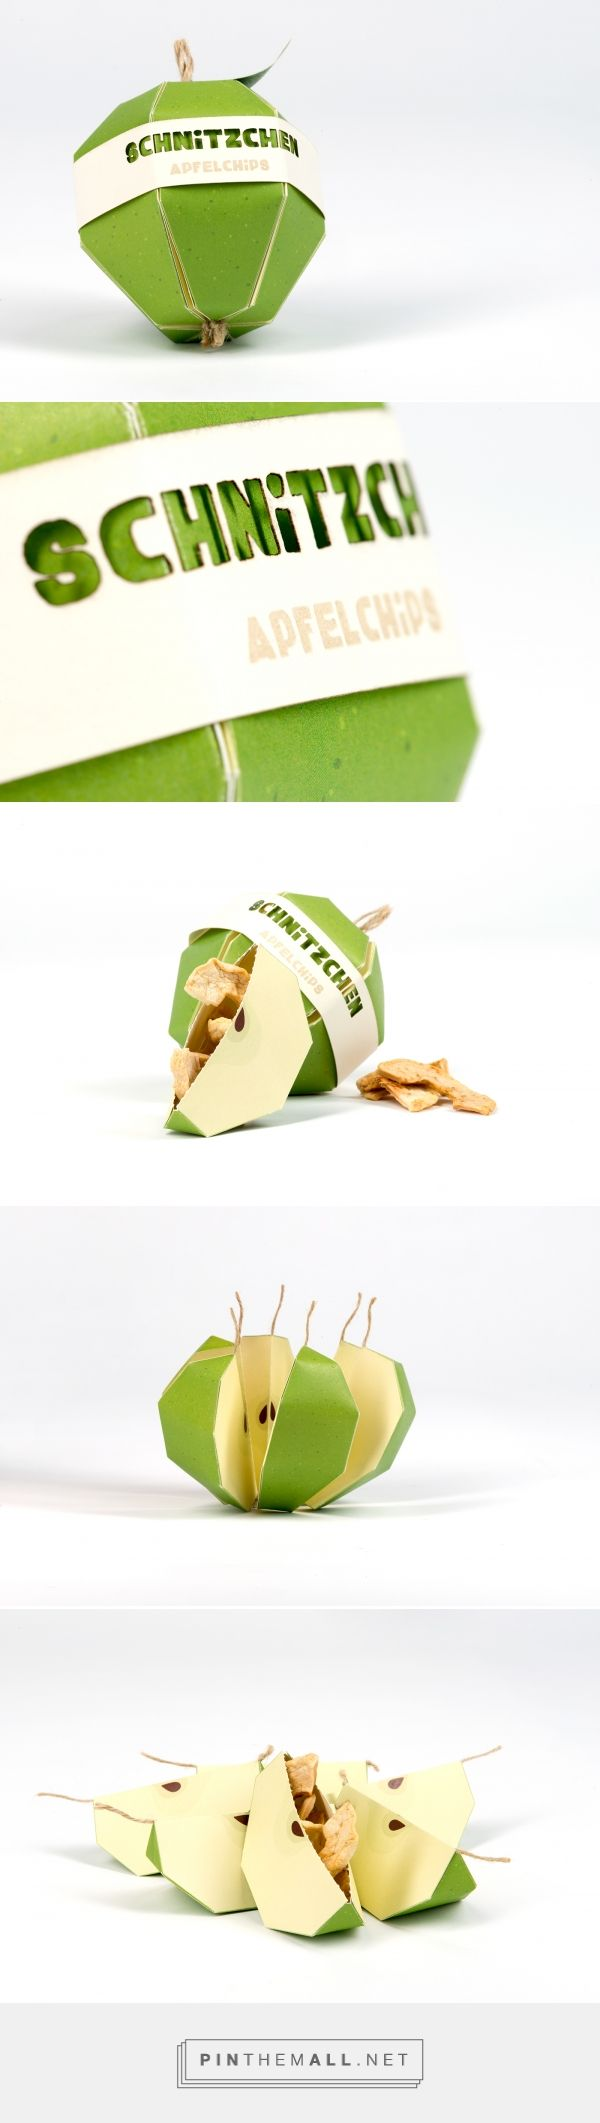 SCHNITZCHEN apple chips by Valentin Zeißner. Source: Bechance. Pin curated by #SFields99 #packaging #design #inspiration #structural #innovation #snacking #health